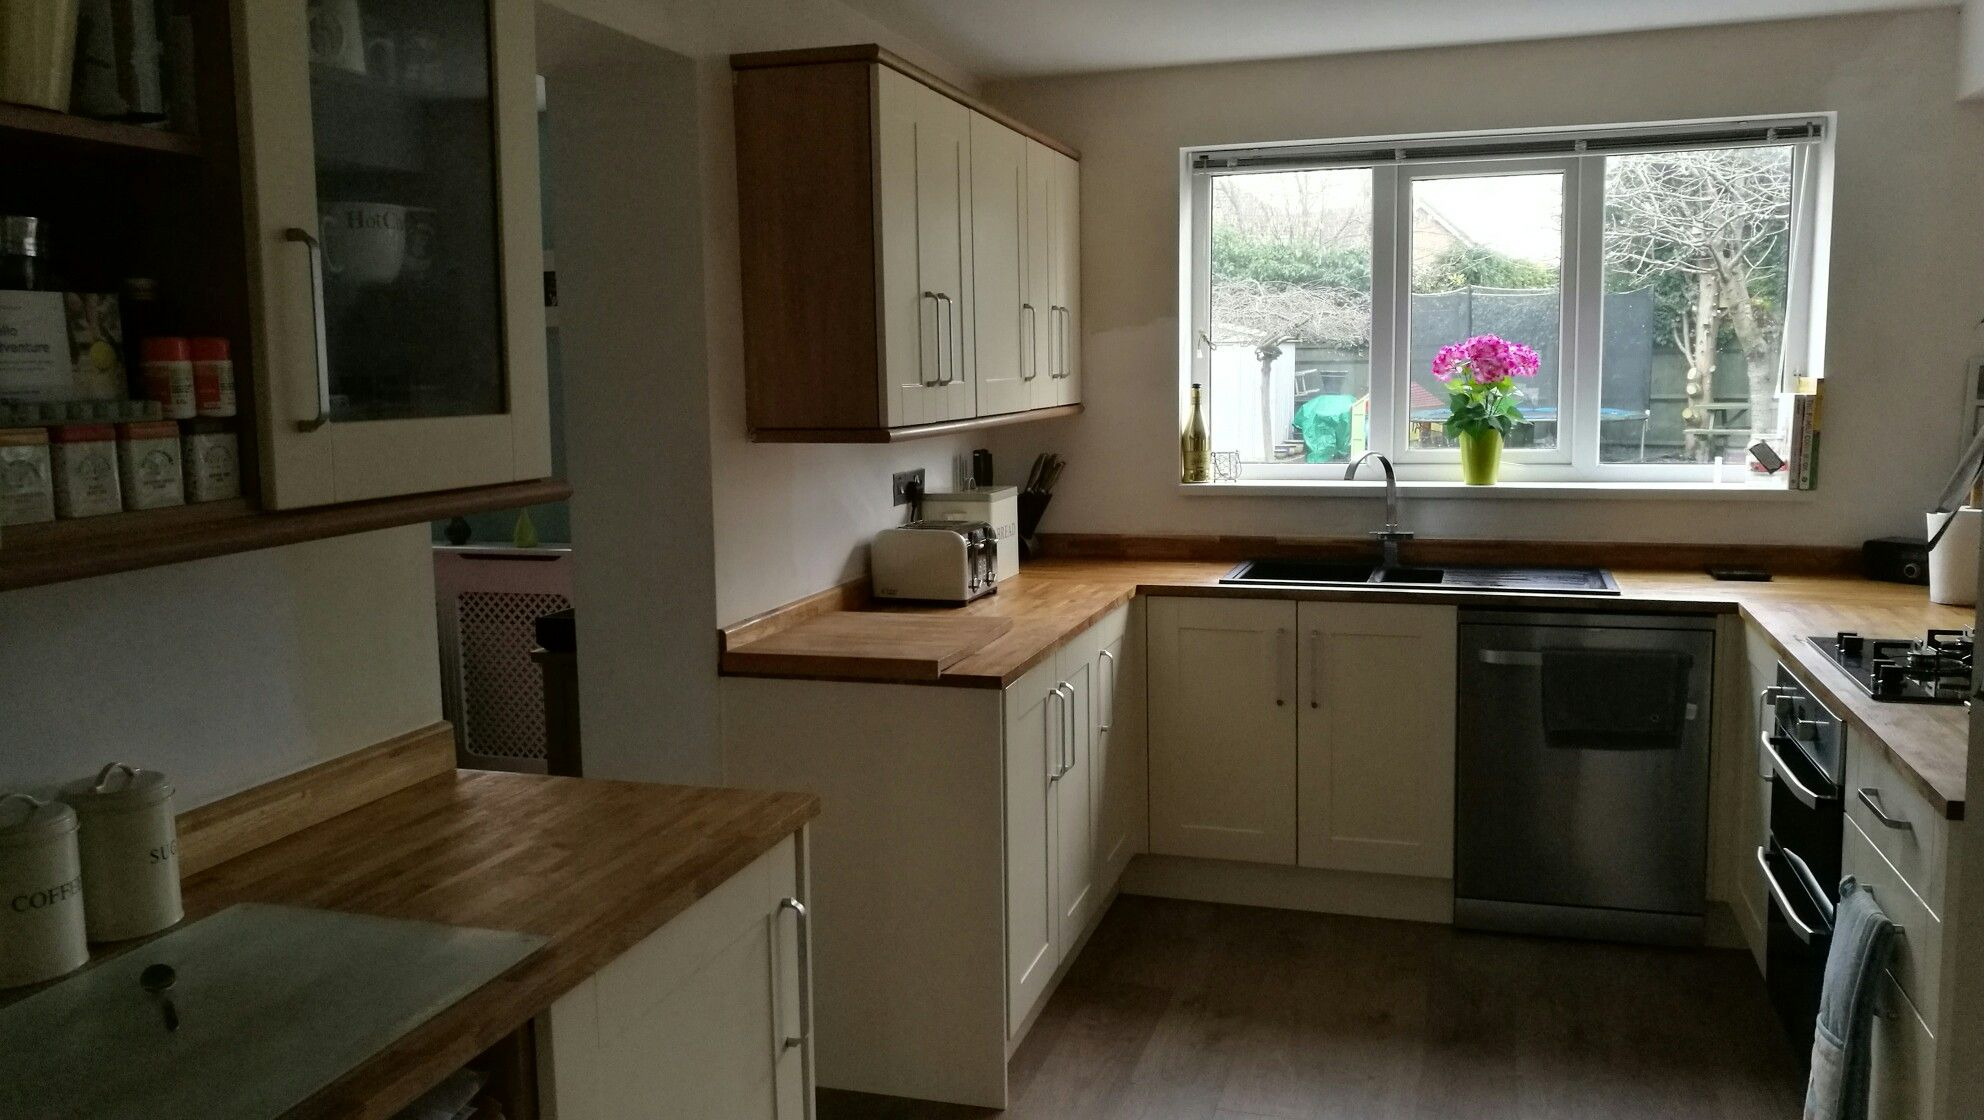 Burford cream (howdens) and solid oak worktops (wickes